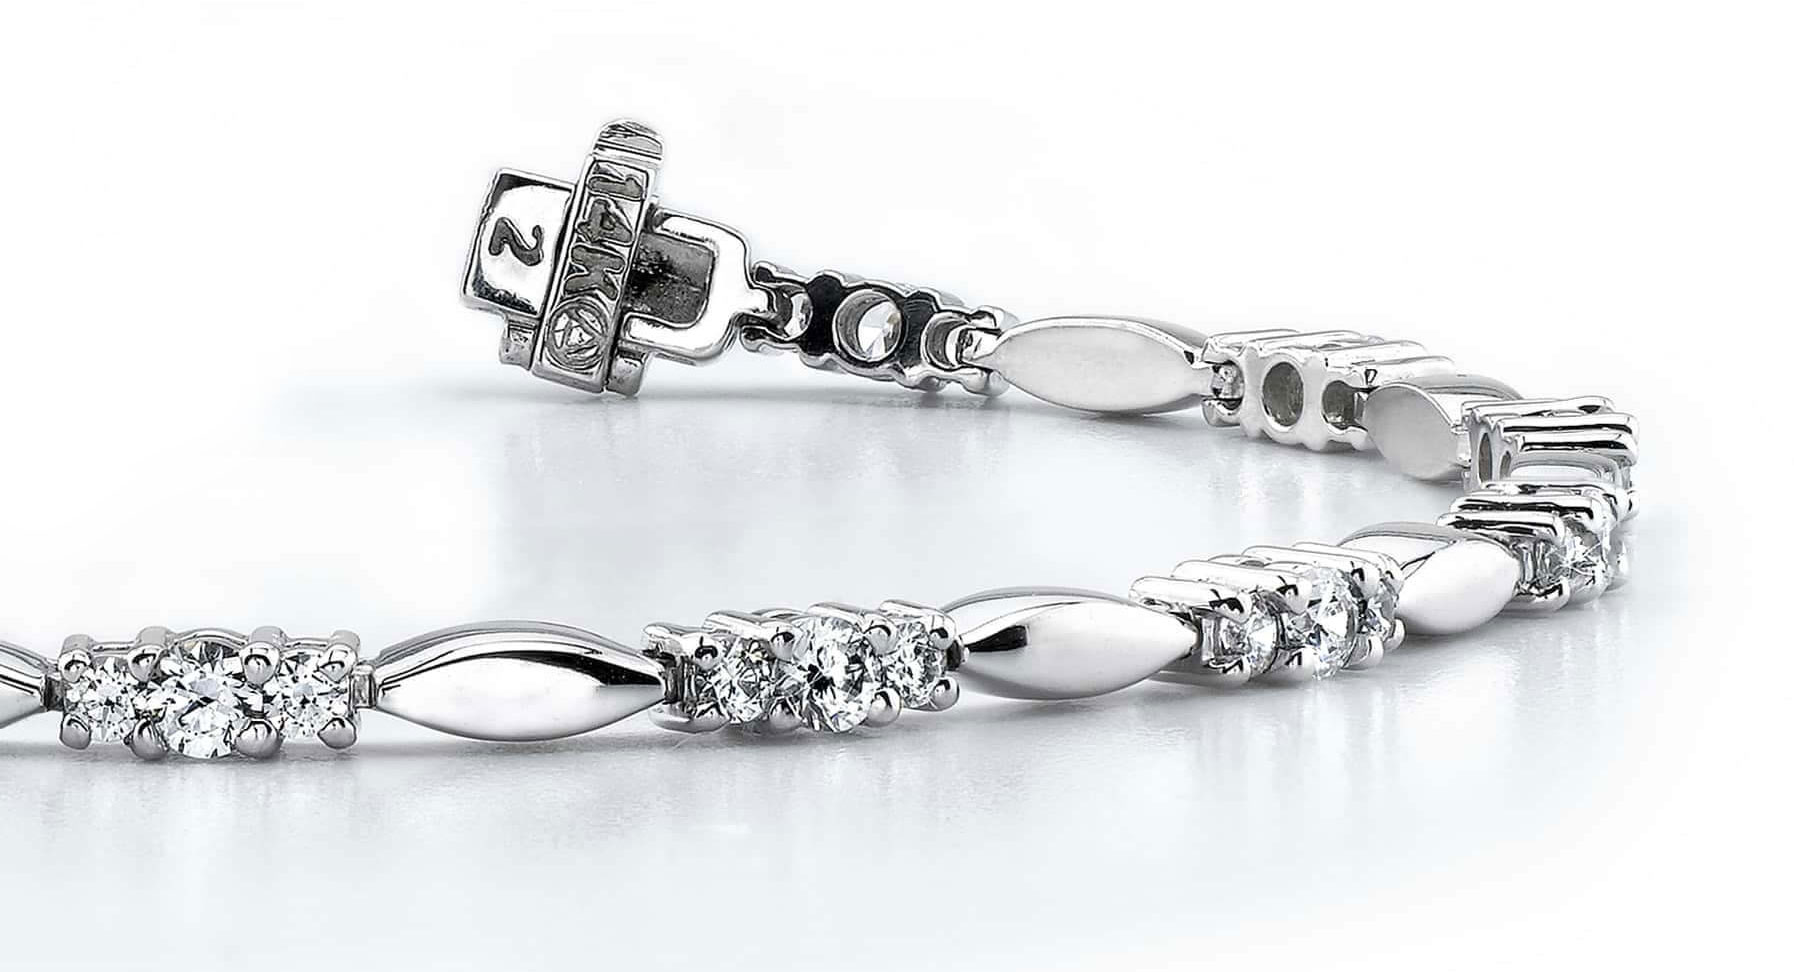 products chopard bracelets happy bezel hearts diamond jewelry enlarged the bracelet link